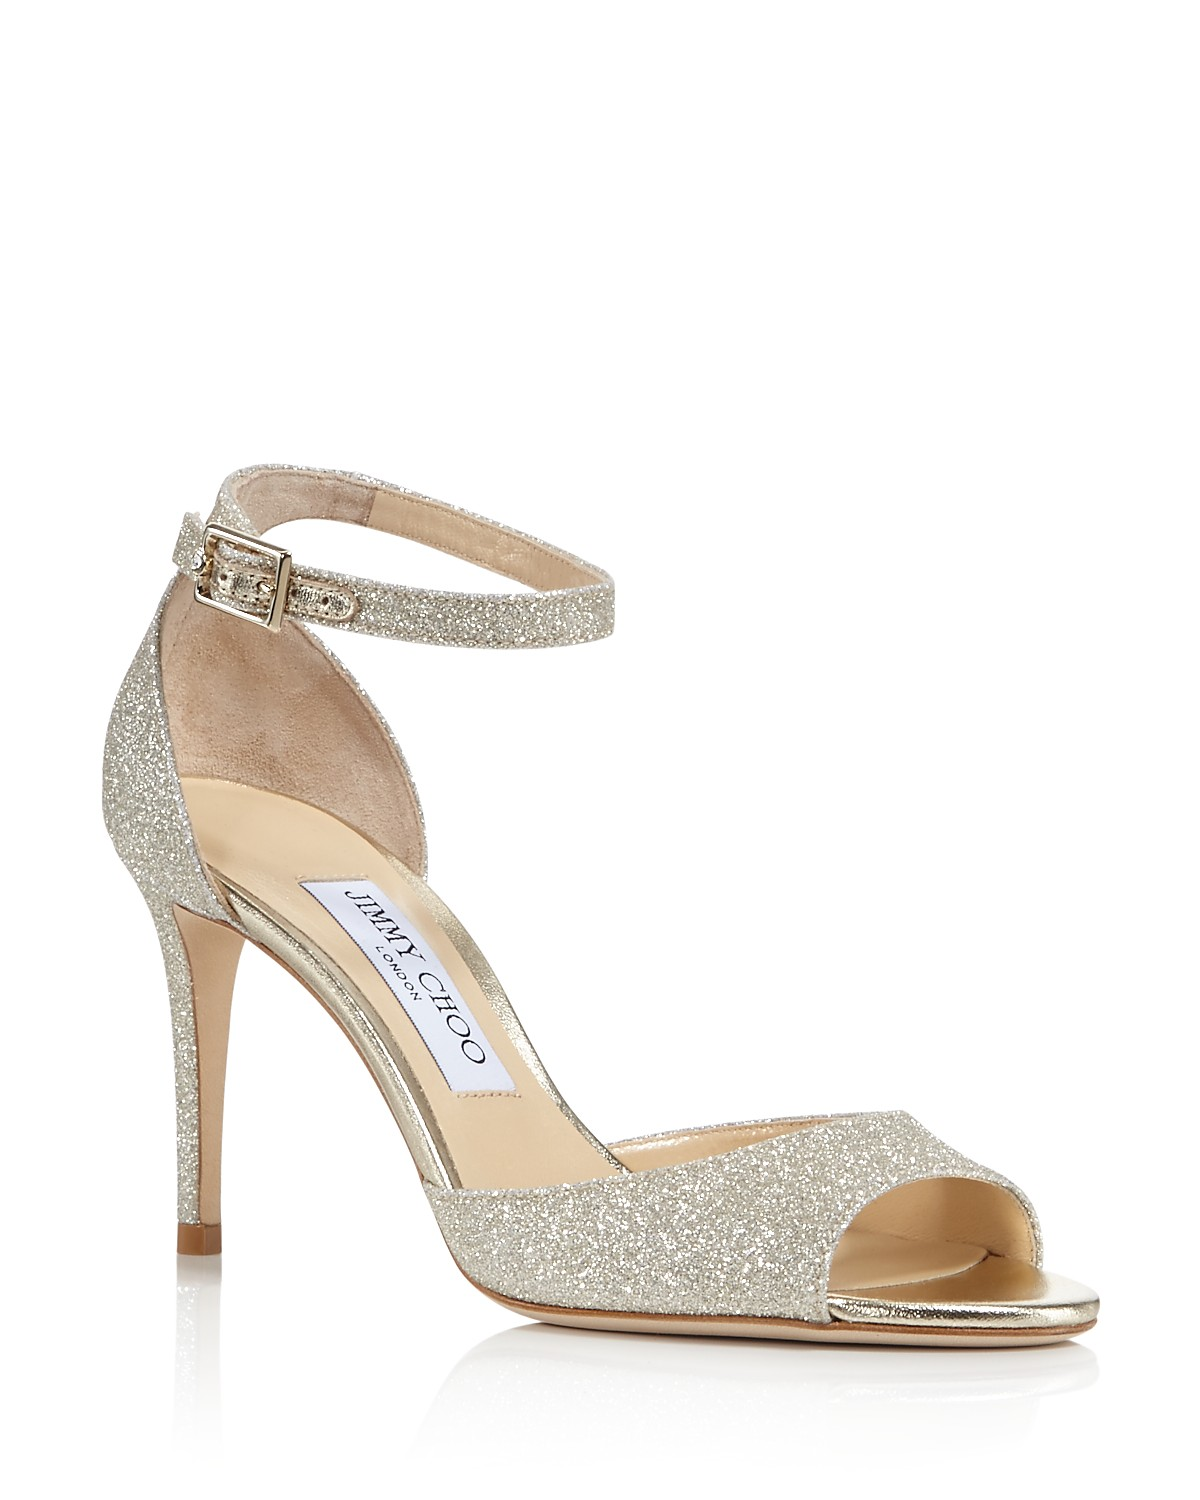 Jimmy choo Women's Annie 85 Glittered Suede High-Heel Ankle Strap Sandals 82oeGVM